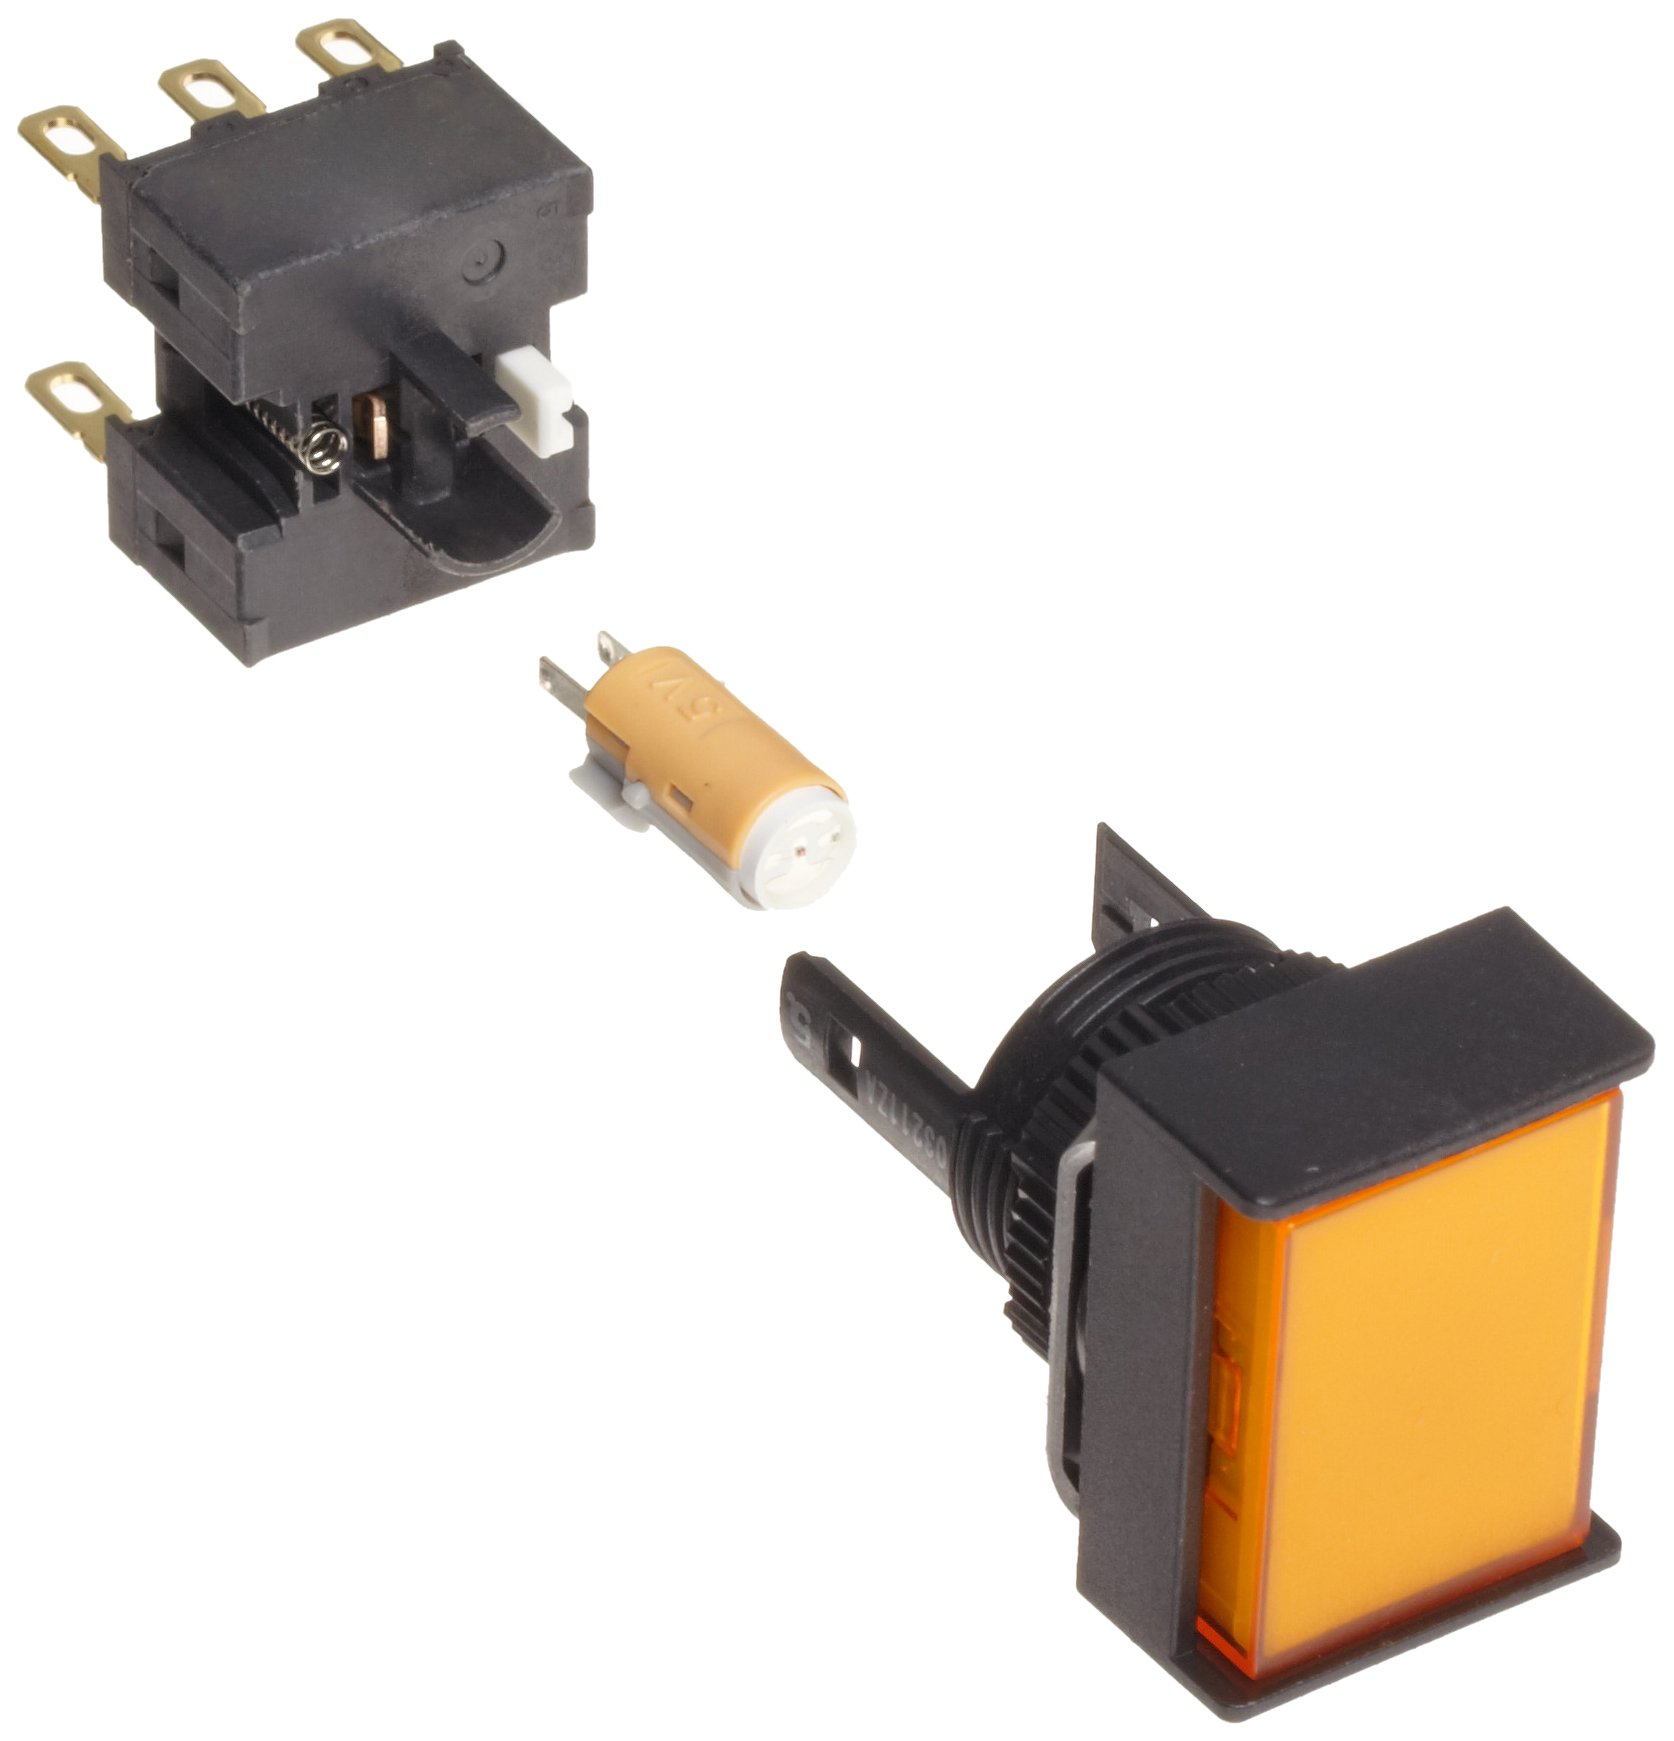 Omron A165L-JGM-24D-1 Two Way Guard Type Pushbutton and Switch, Solder Terminal, IP65 Oil-Resistant, 16mm Mounting Aperture, LED Lighted, Momentary Operation, Rectangular, Green, 24 VDC Rated Voltage, Single Pole Double Throw